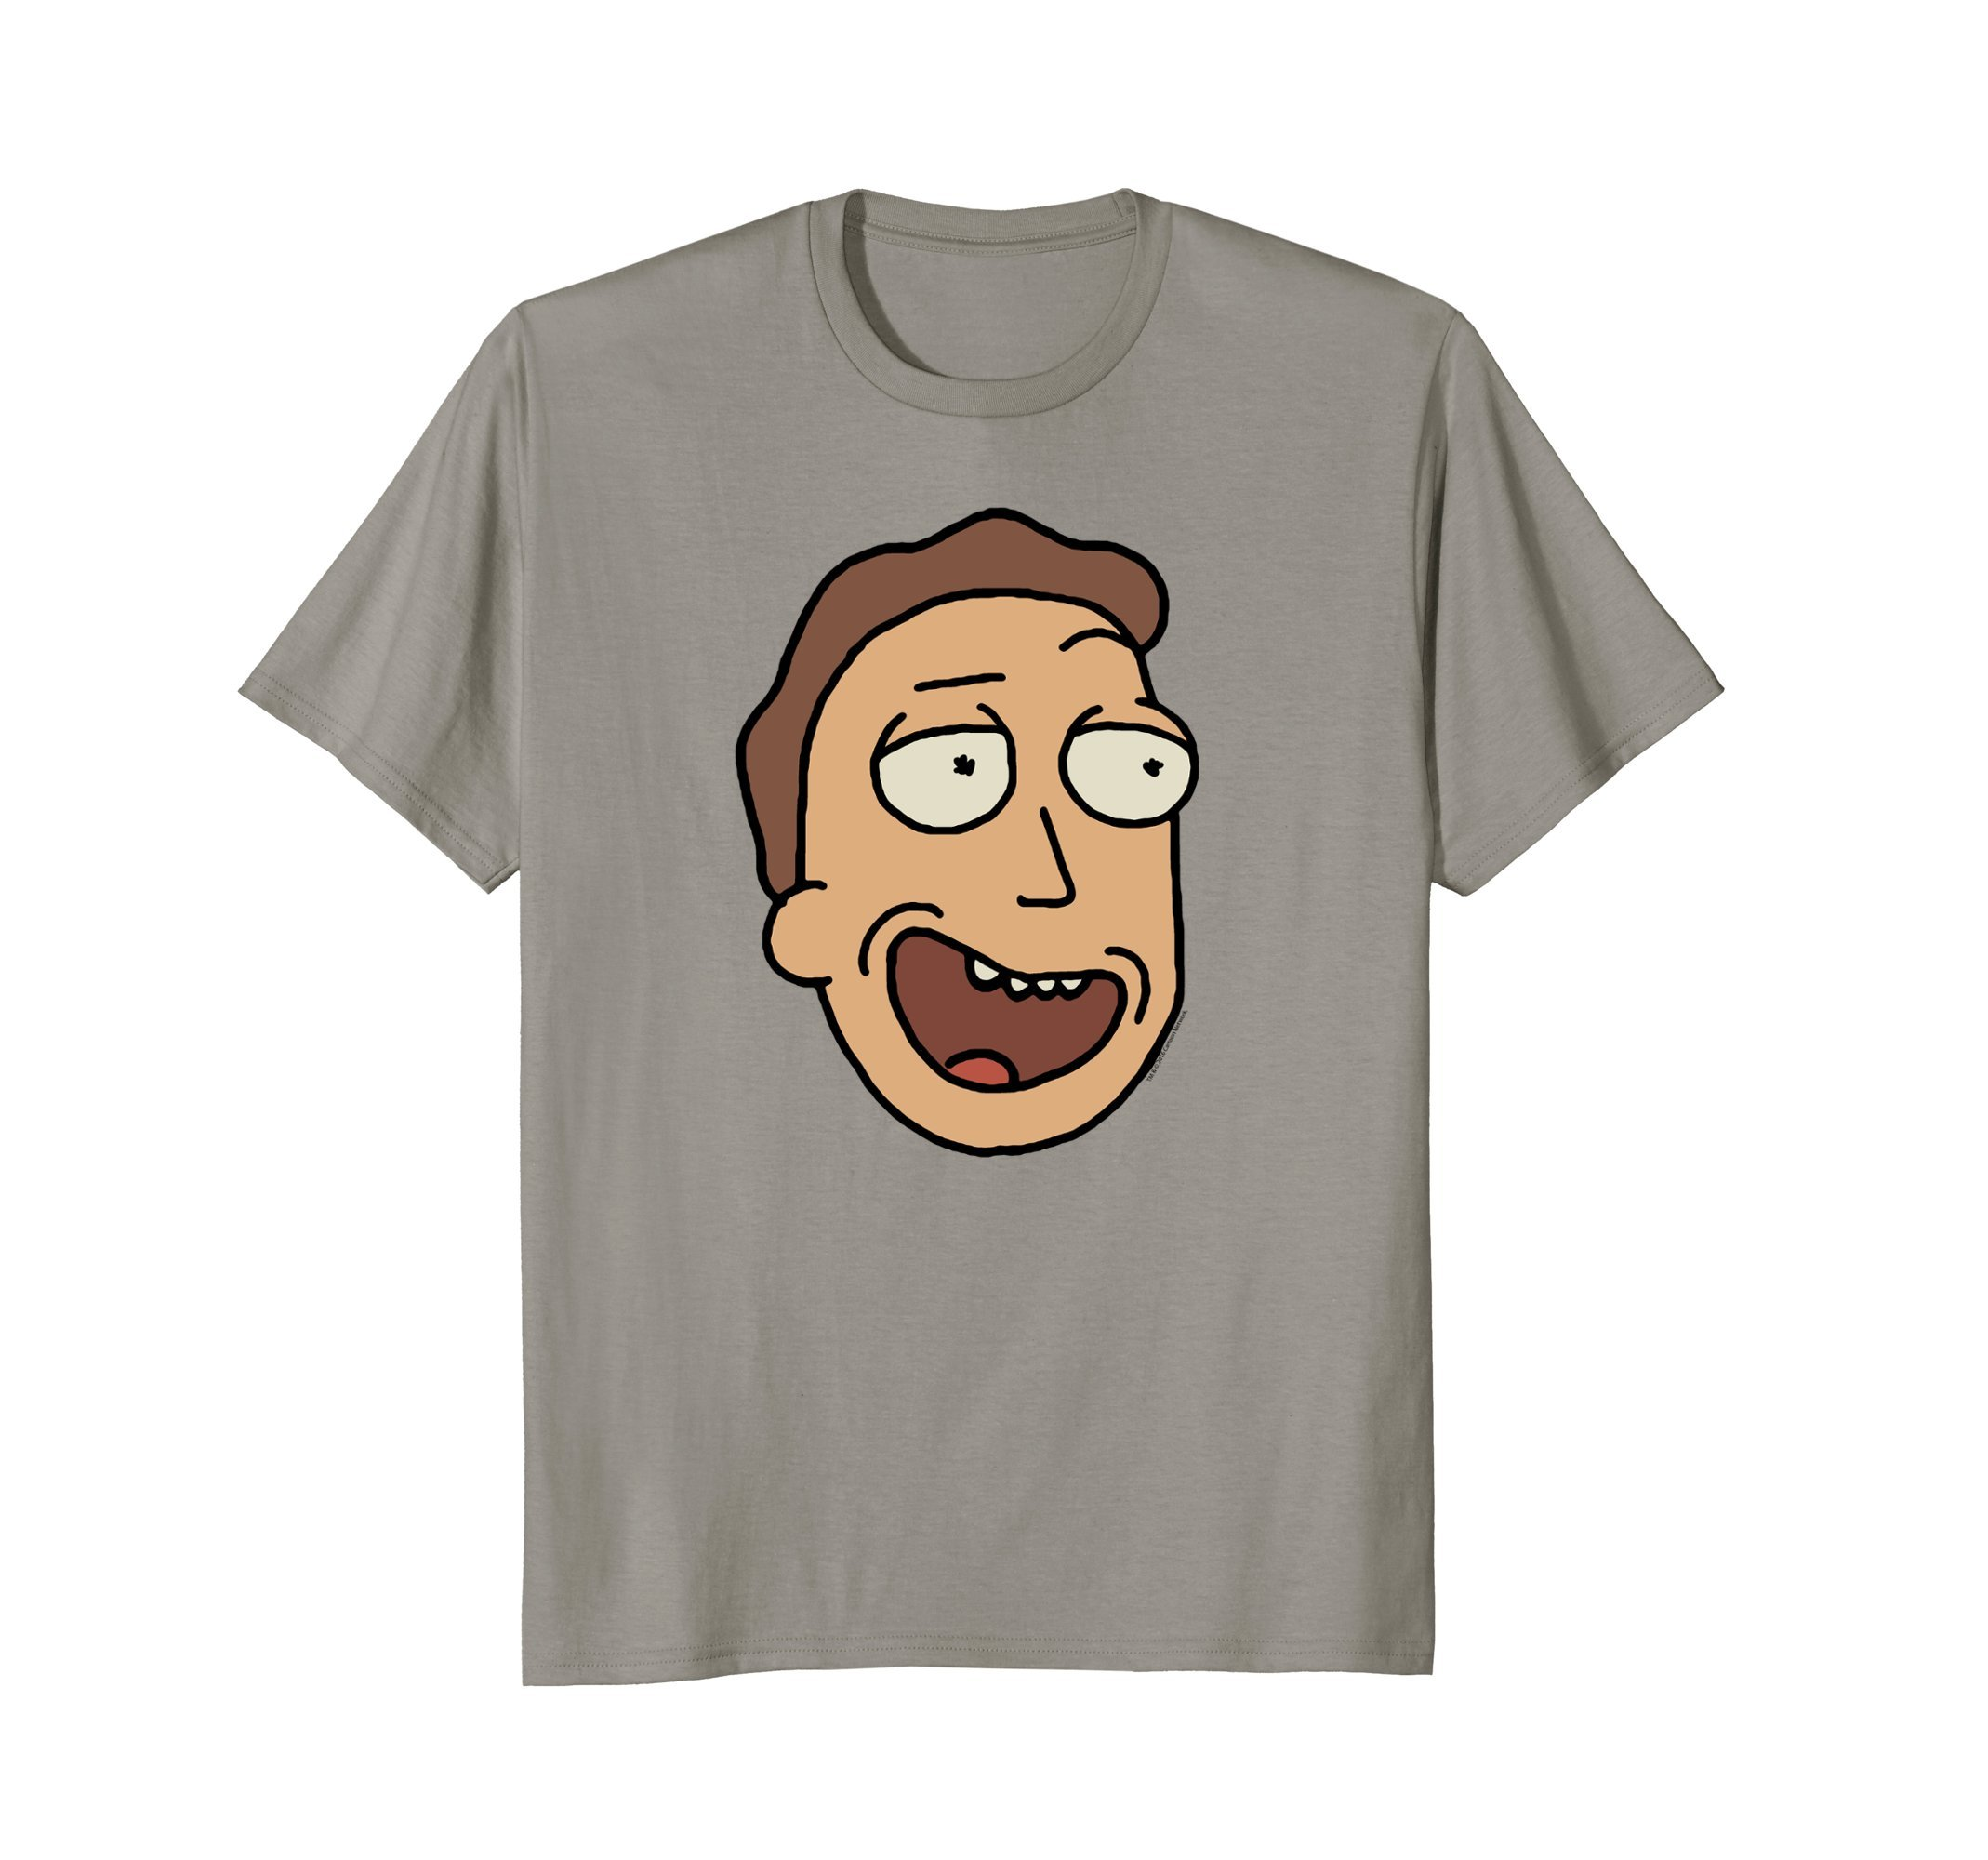 Rick Morty Self Absorbed Jerry Shirts